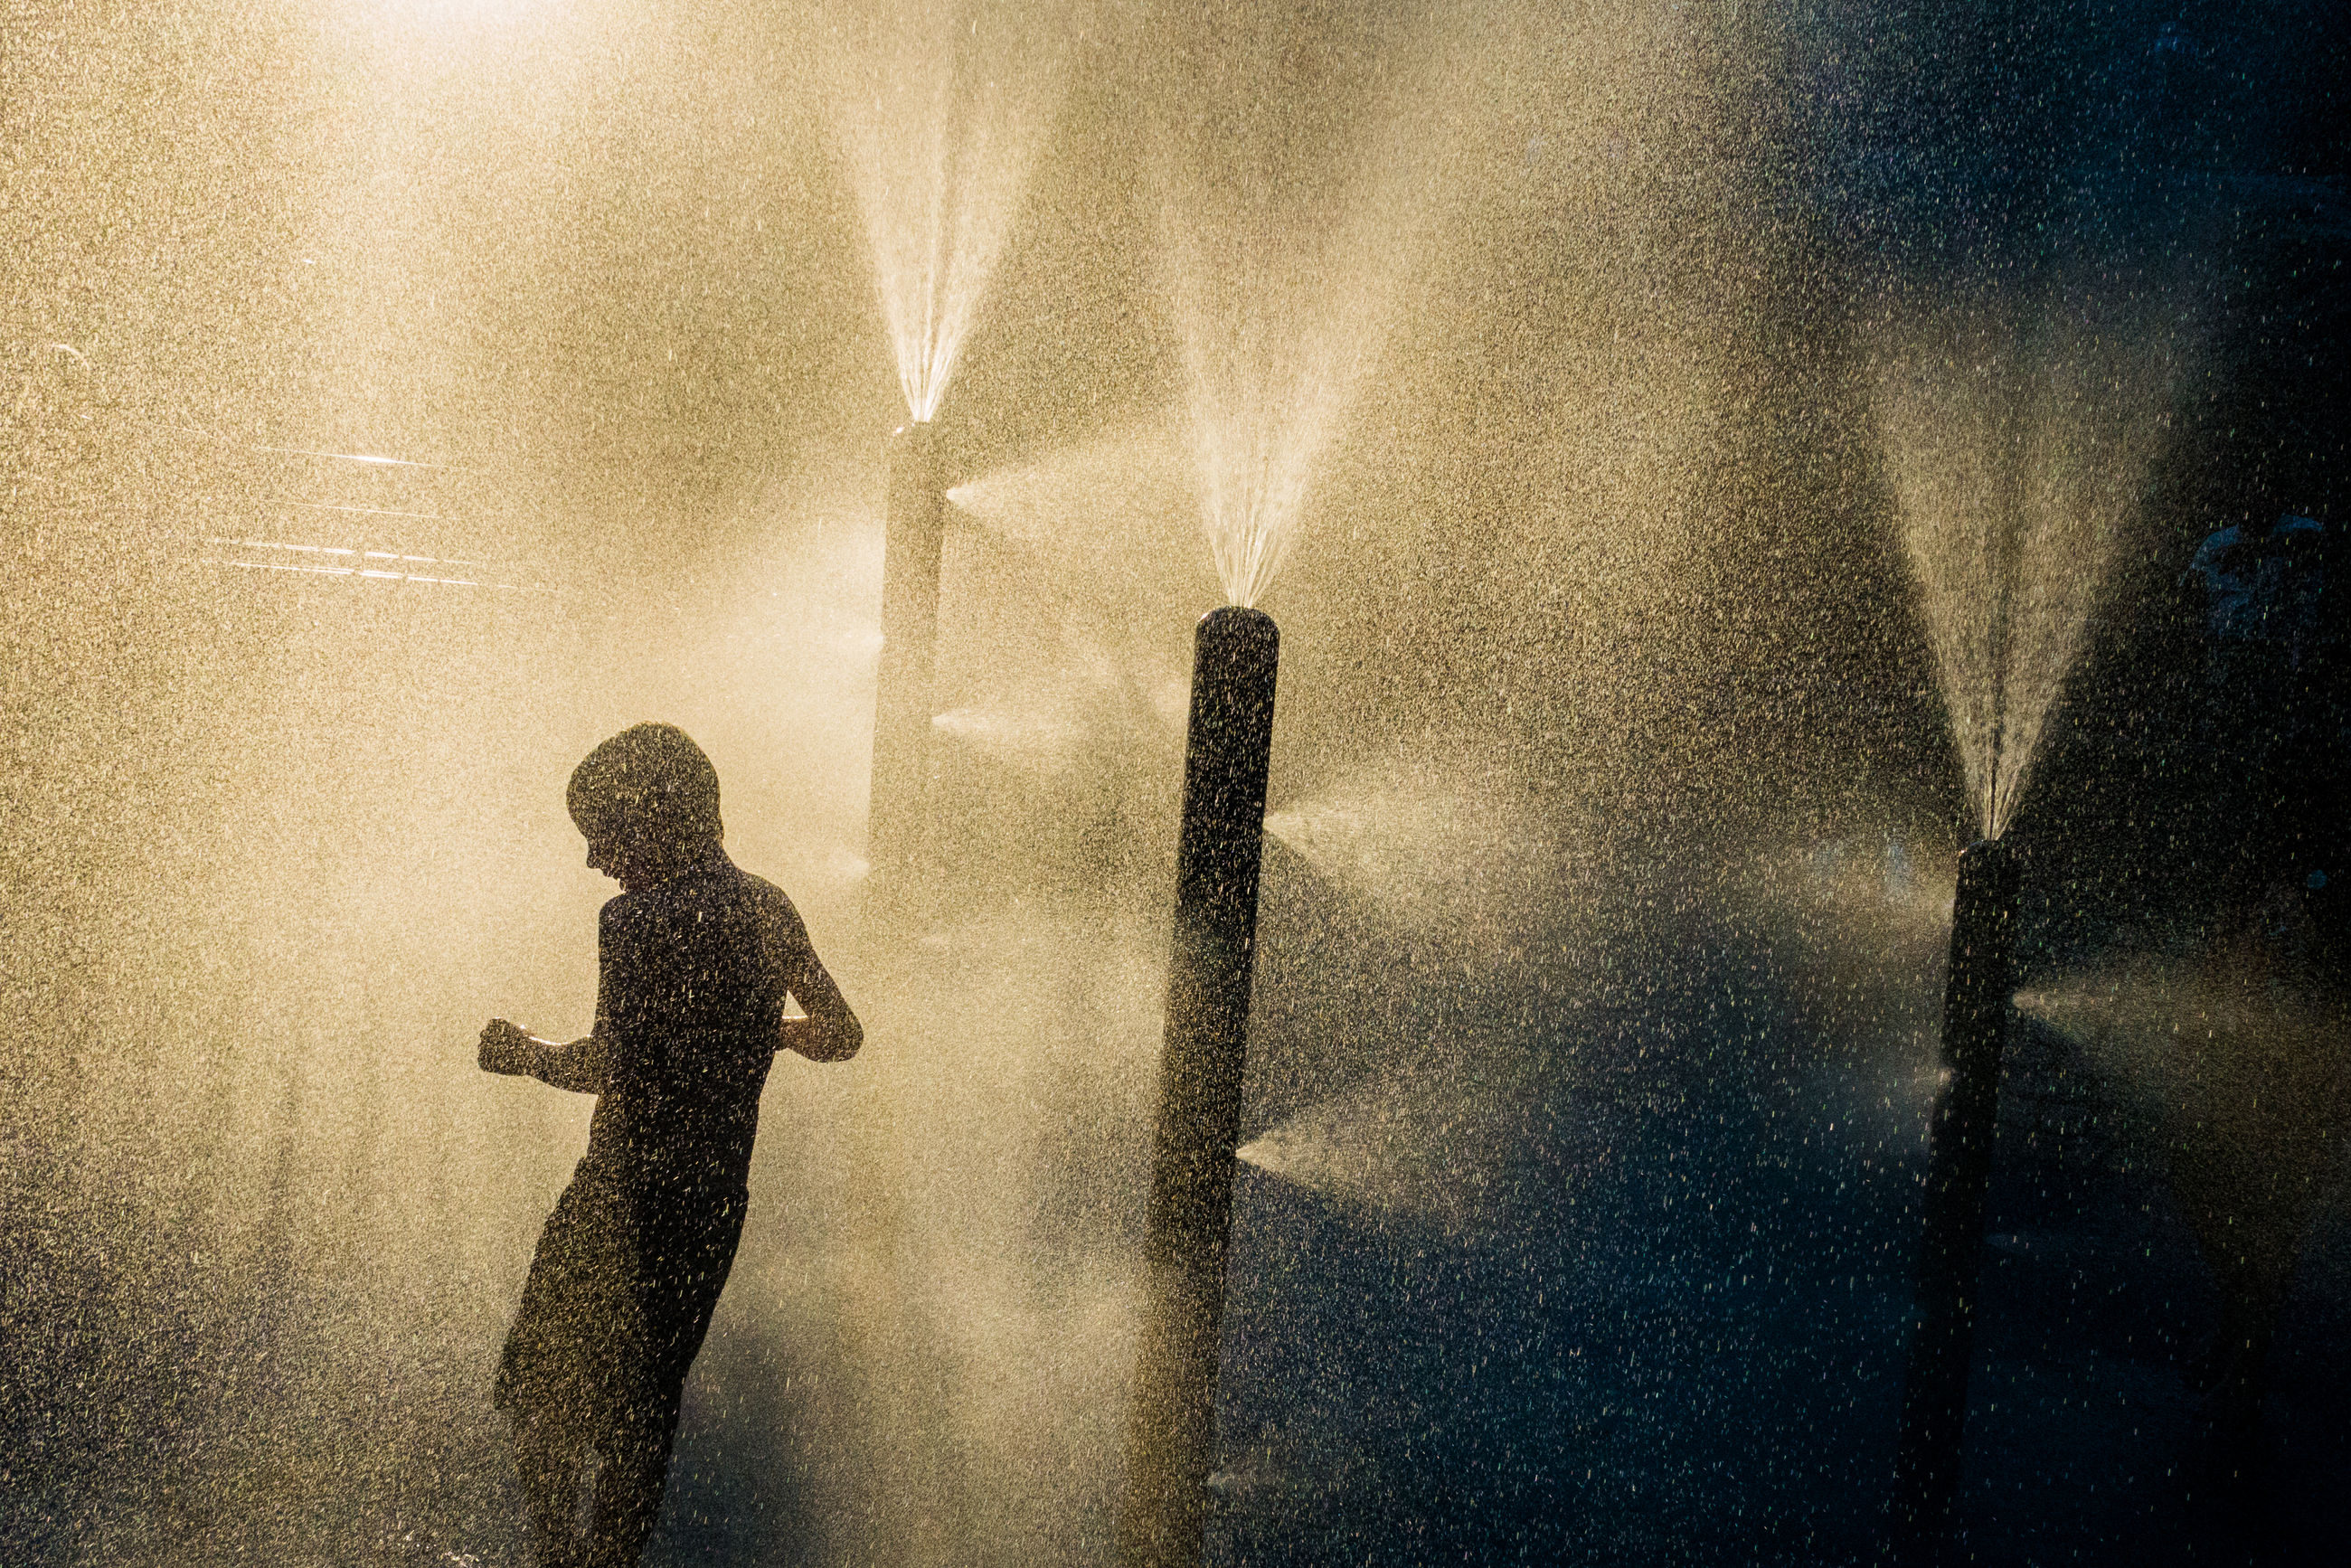 spraying, night, standing, silhouette, three quarter length, water, motion, mobile phone, one person, wireless technology, long exposure, outdoors, adult, people, adults only, technology, one man only, young adult, sky, pixelated